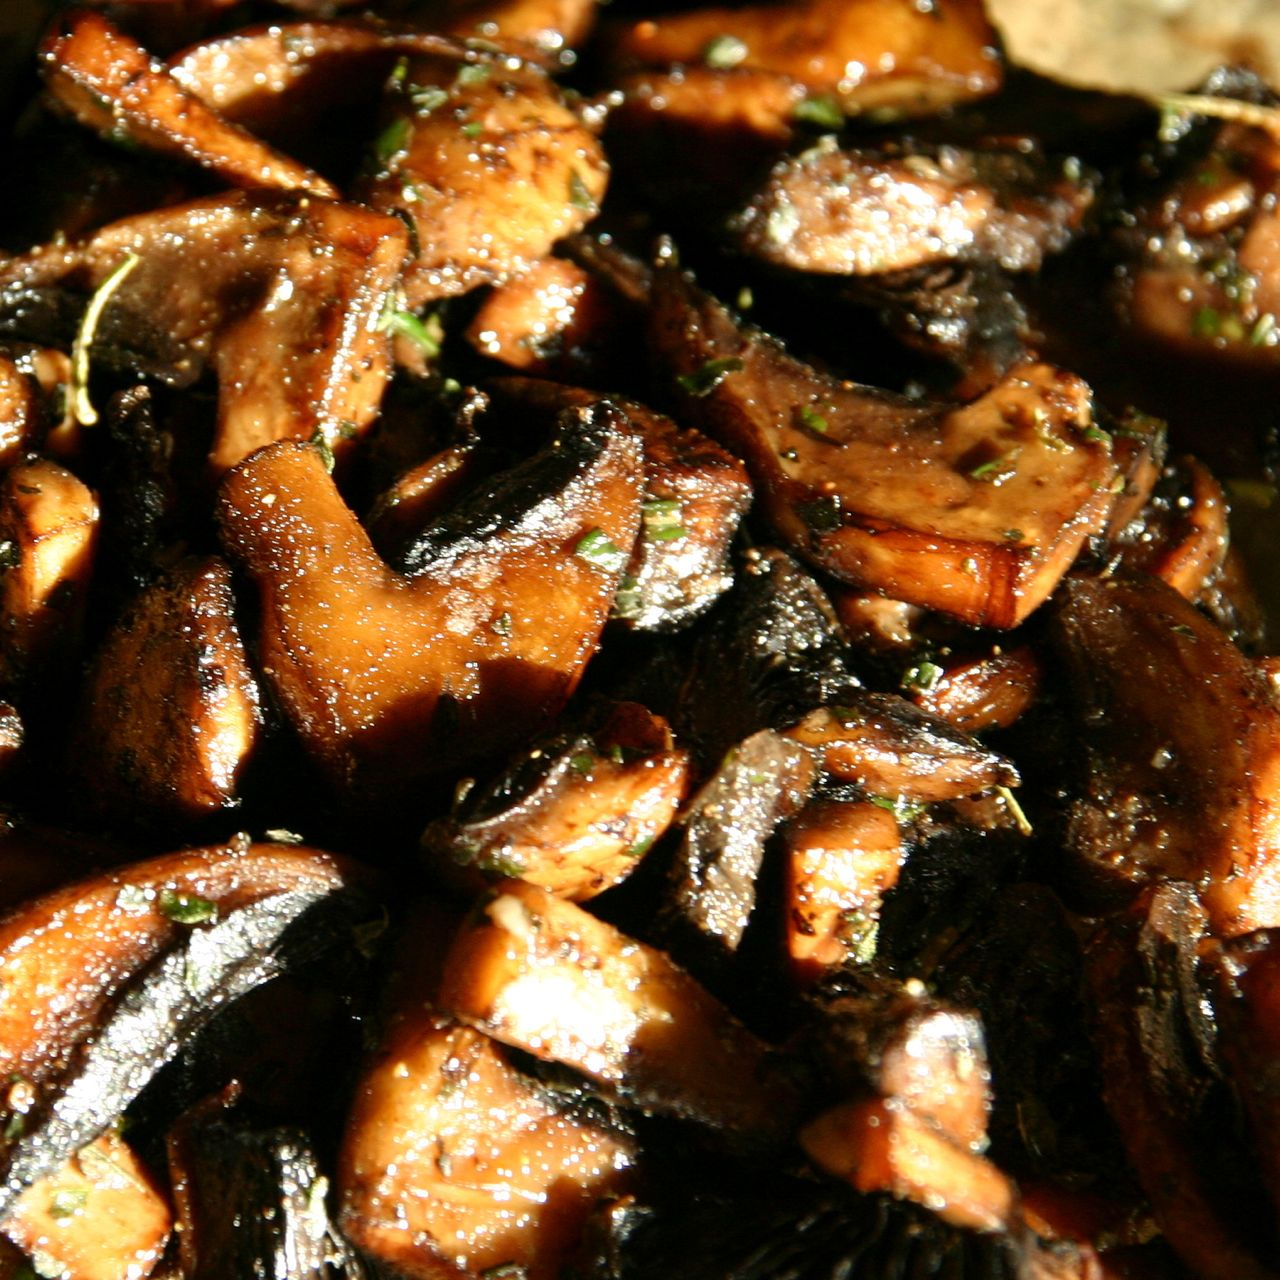 Marinated Portobello Mushrooms The Healthy Eating Site